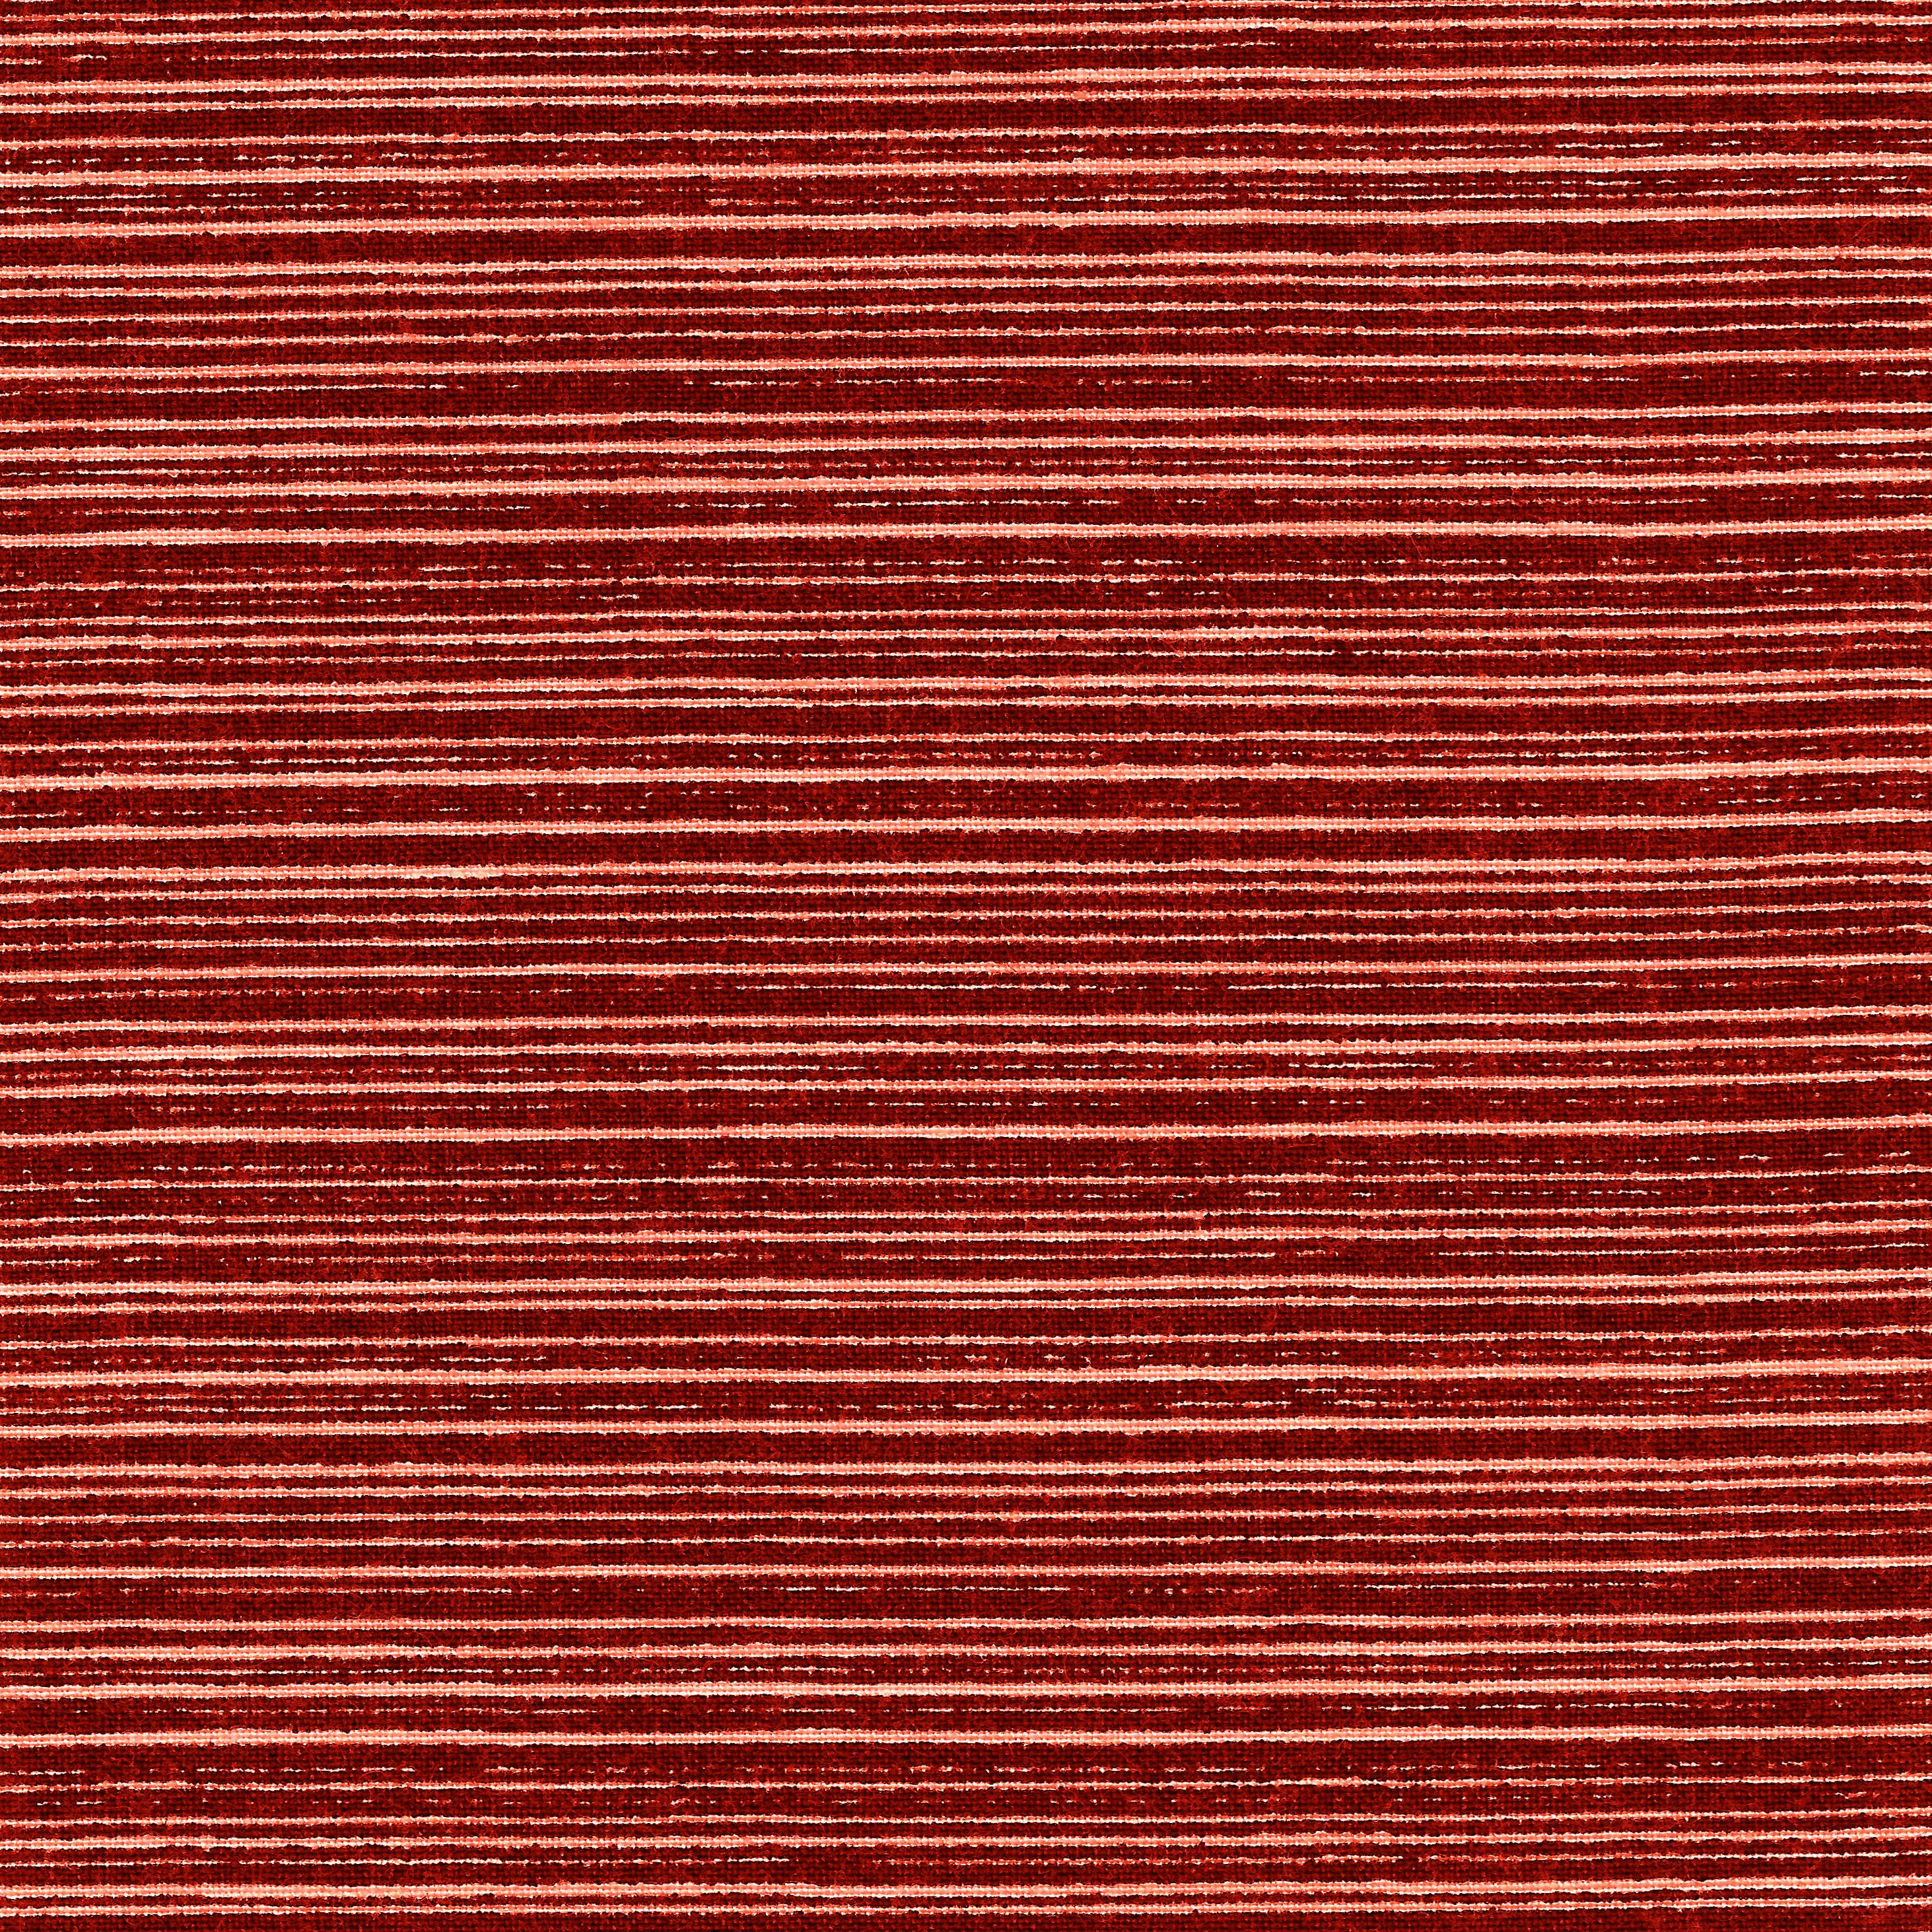 Wonderful Brick Red Striped Fabric Texture Picture | Free Photograph  ND03